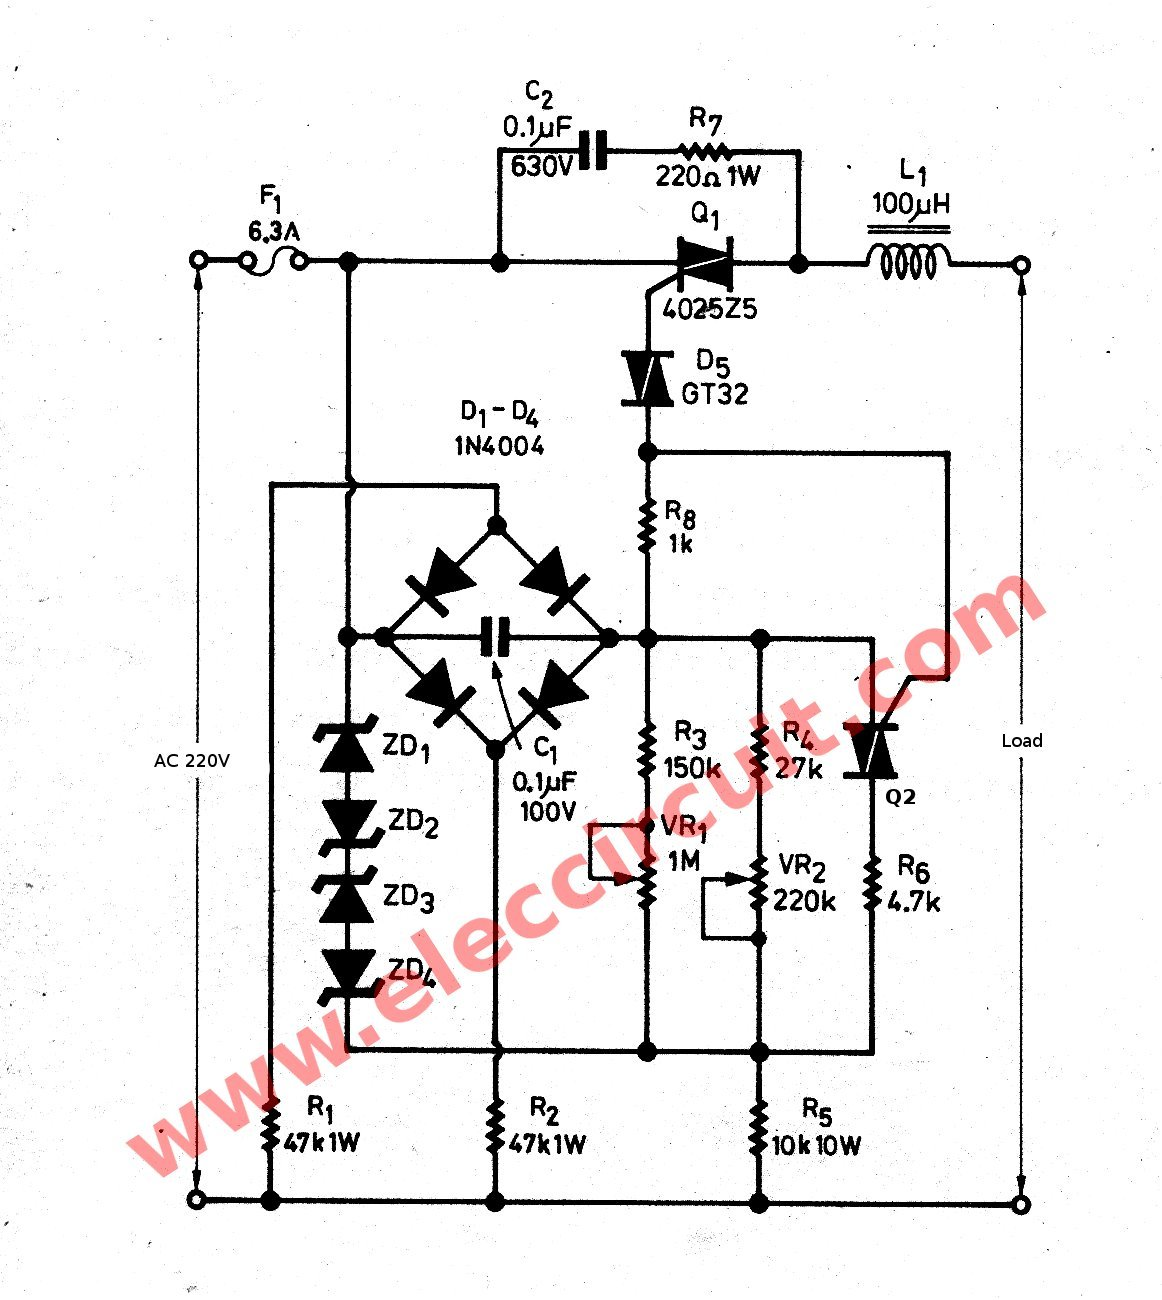 2 Wire 220 Schematic Diagram